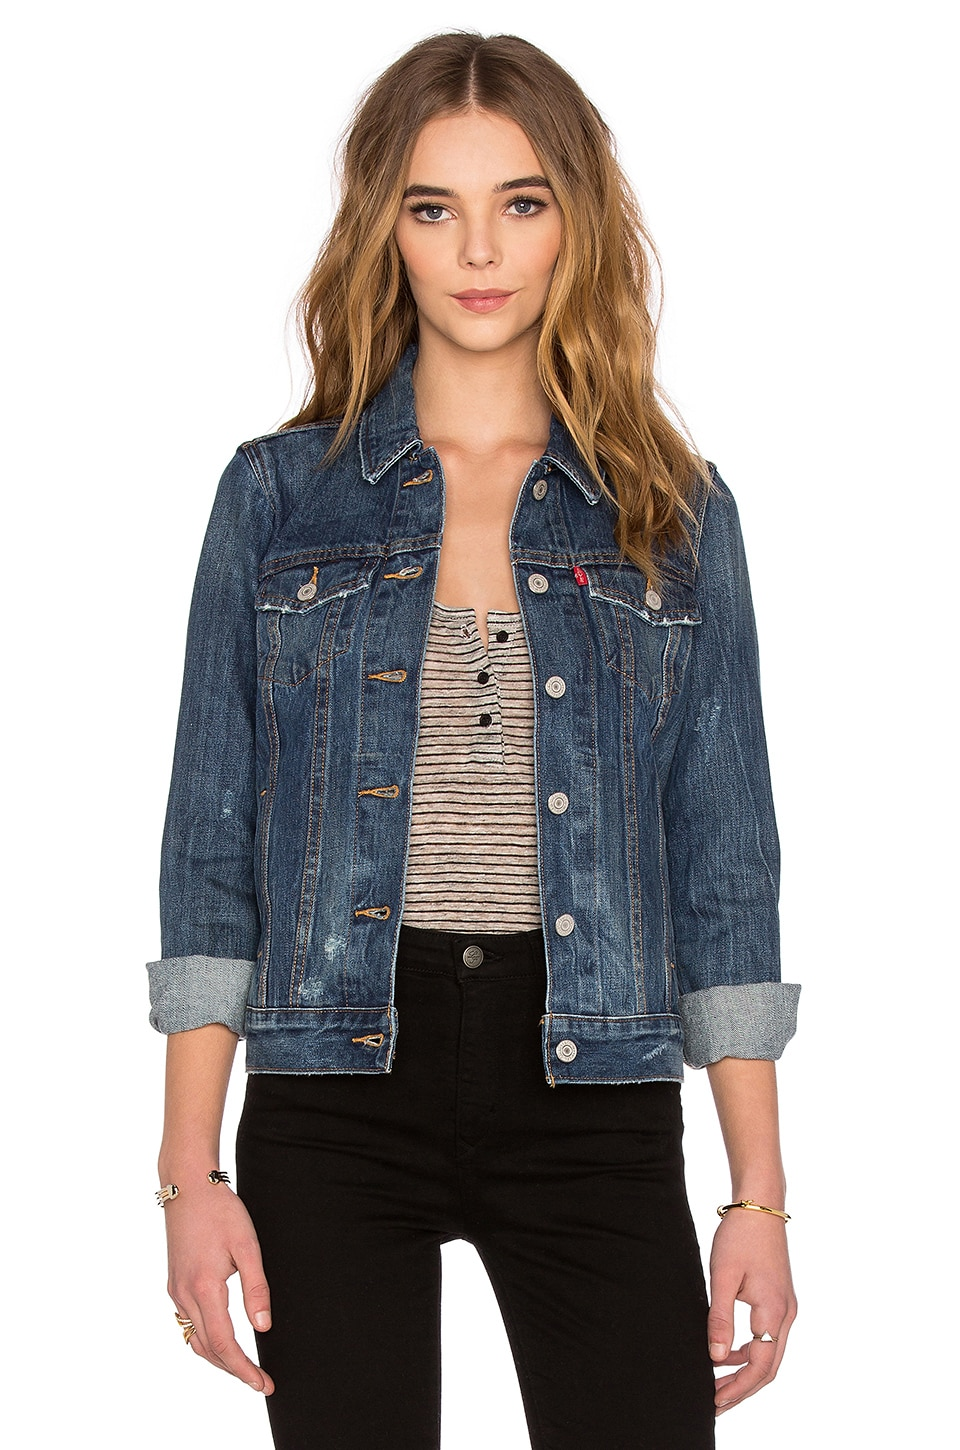 LEVI'S Boyfriend Trucker Jacket in Blue Woodstock